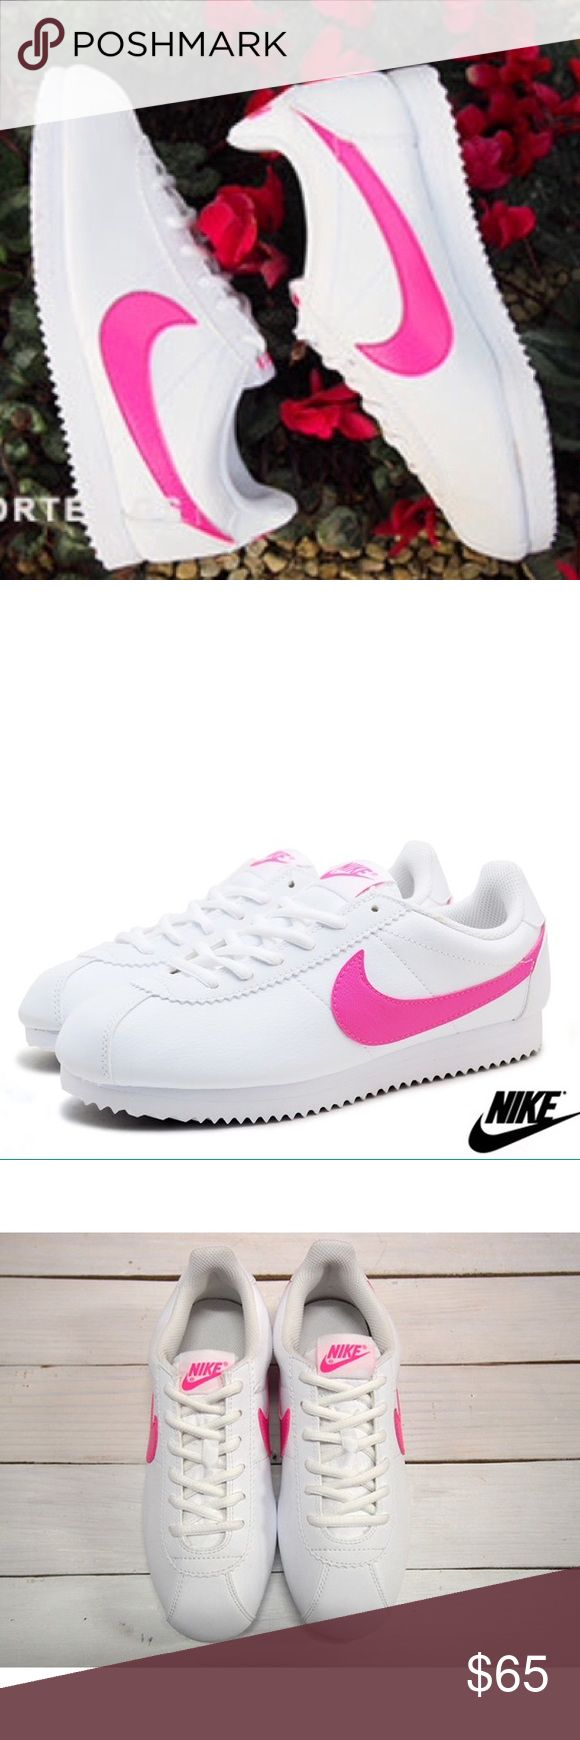 Nike Cortez white pink womens size 8.5 shoes Shoes are a size 7 youth which is a women's size 8.5. I added a sizing chart for reference. Brand new No box Nike Shoes Sneakers